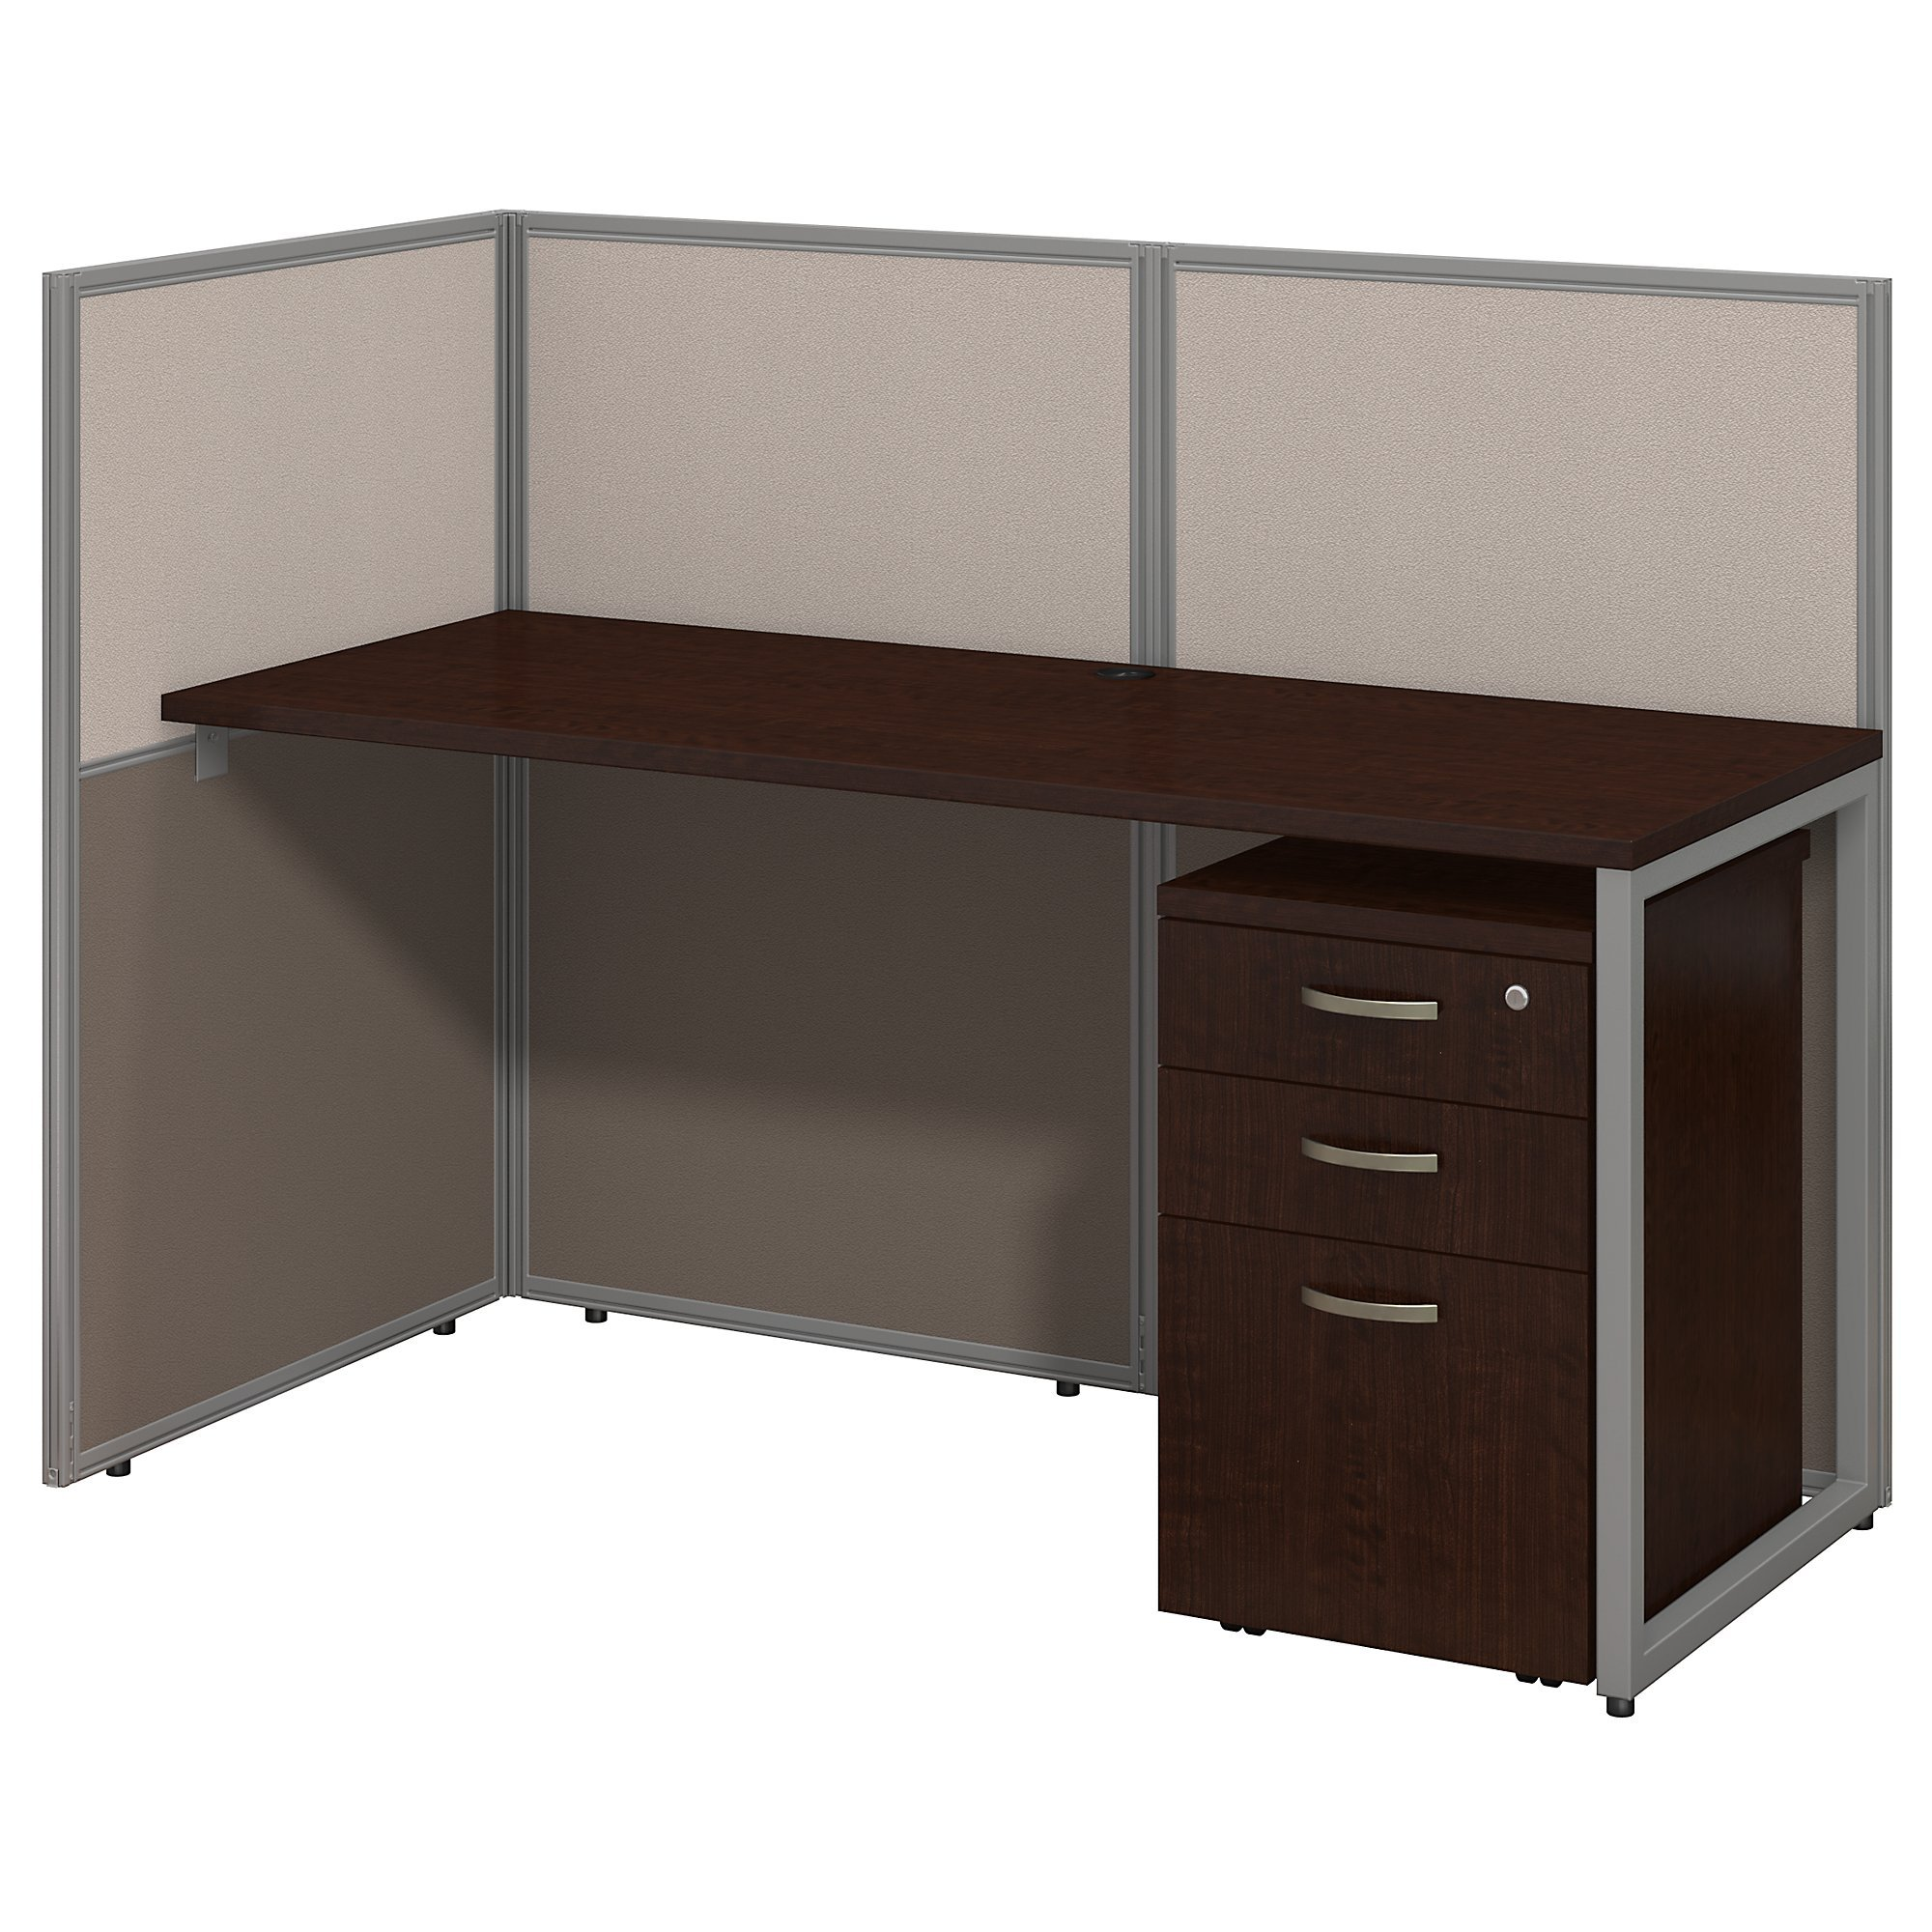 Bush Business Furniture Easy Office 60W Straight Desk Open Office with Mobile File Cabinet in Mocha Cherry